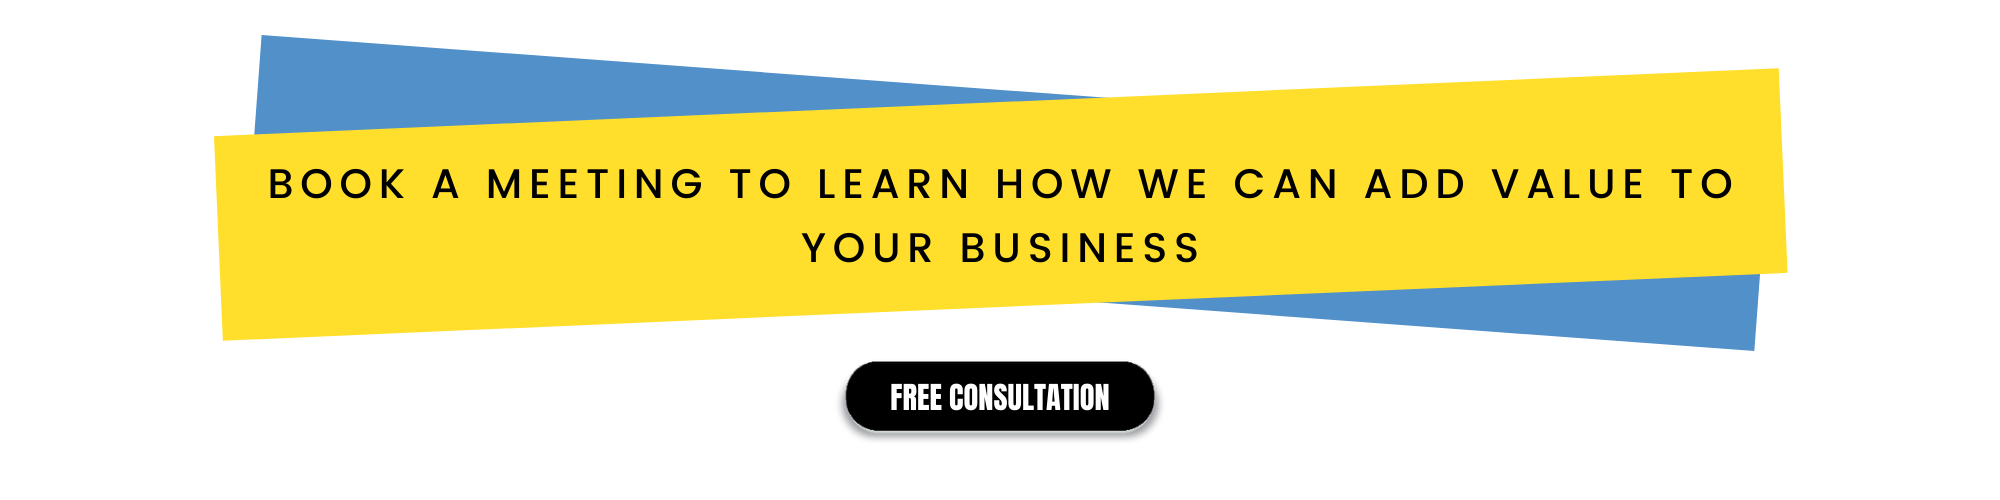 Free Consultation with Accountants